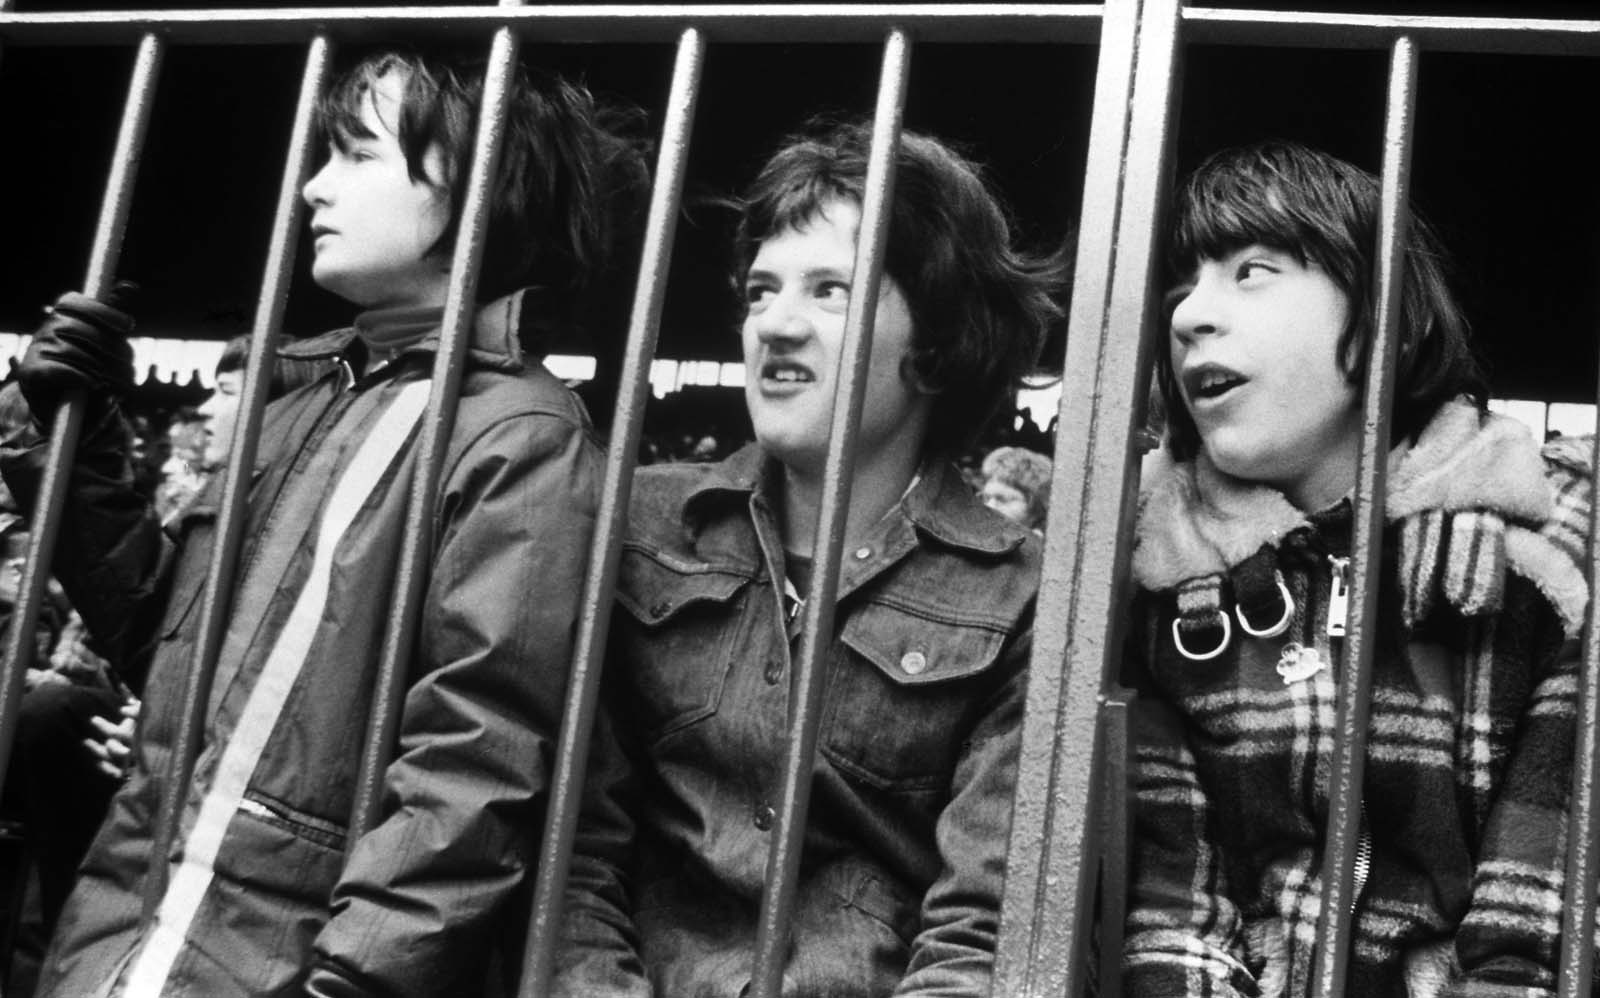 black and white photos of young lads in sevties clothes pressed against the railings of a football terrace